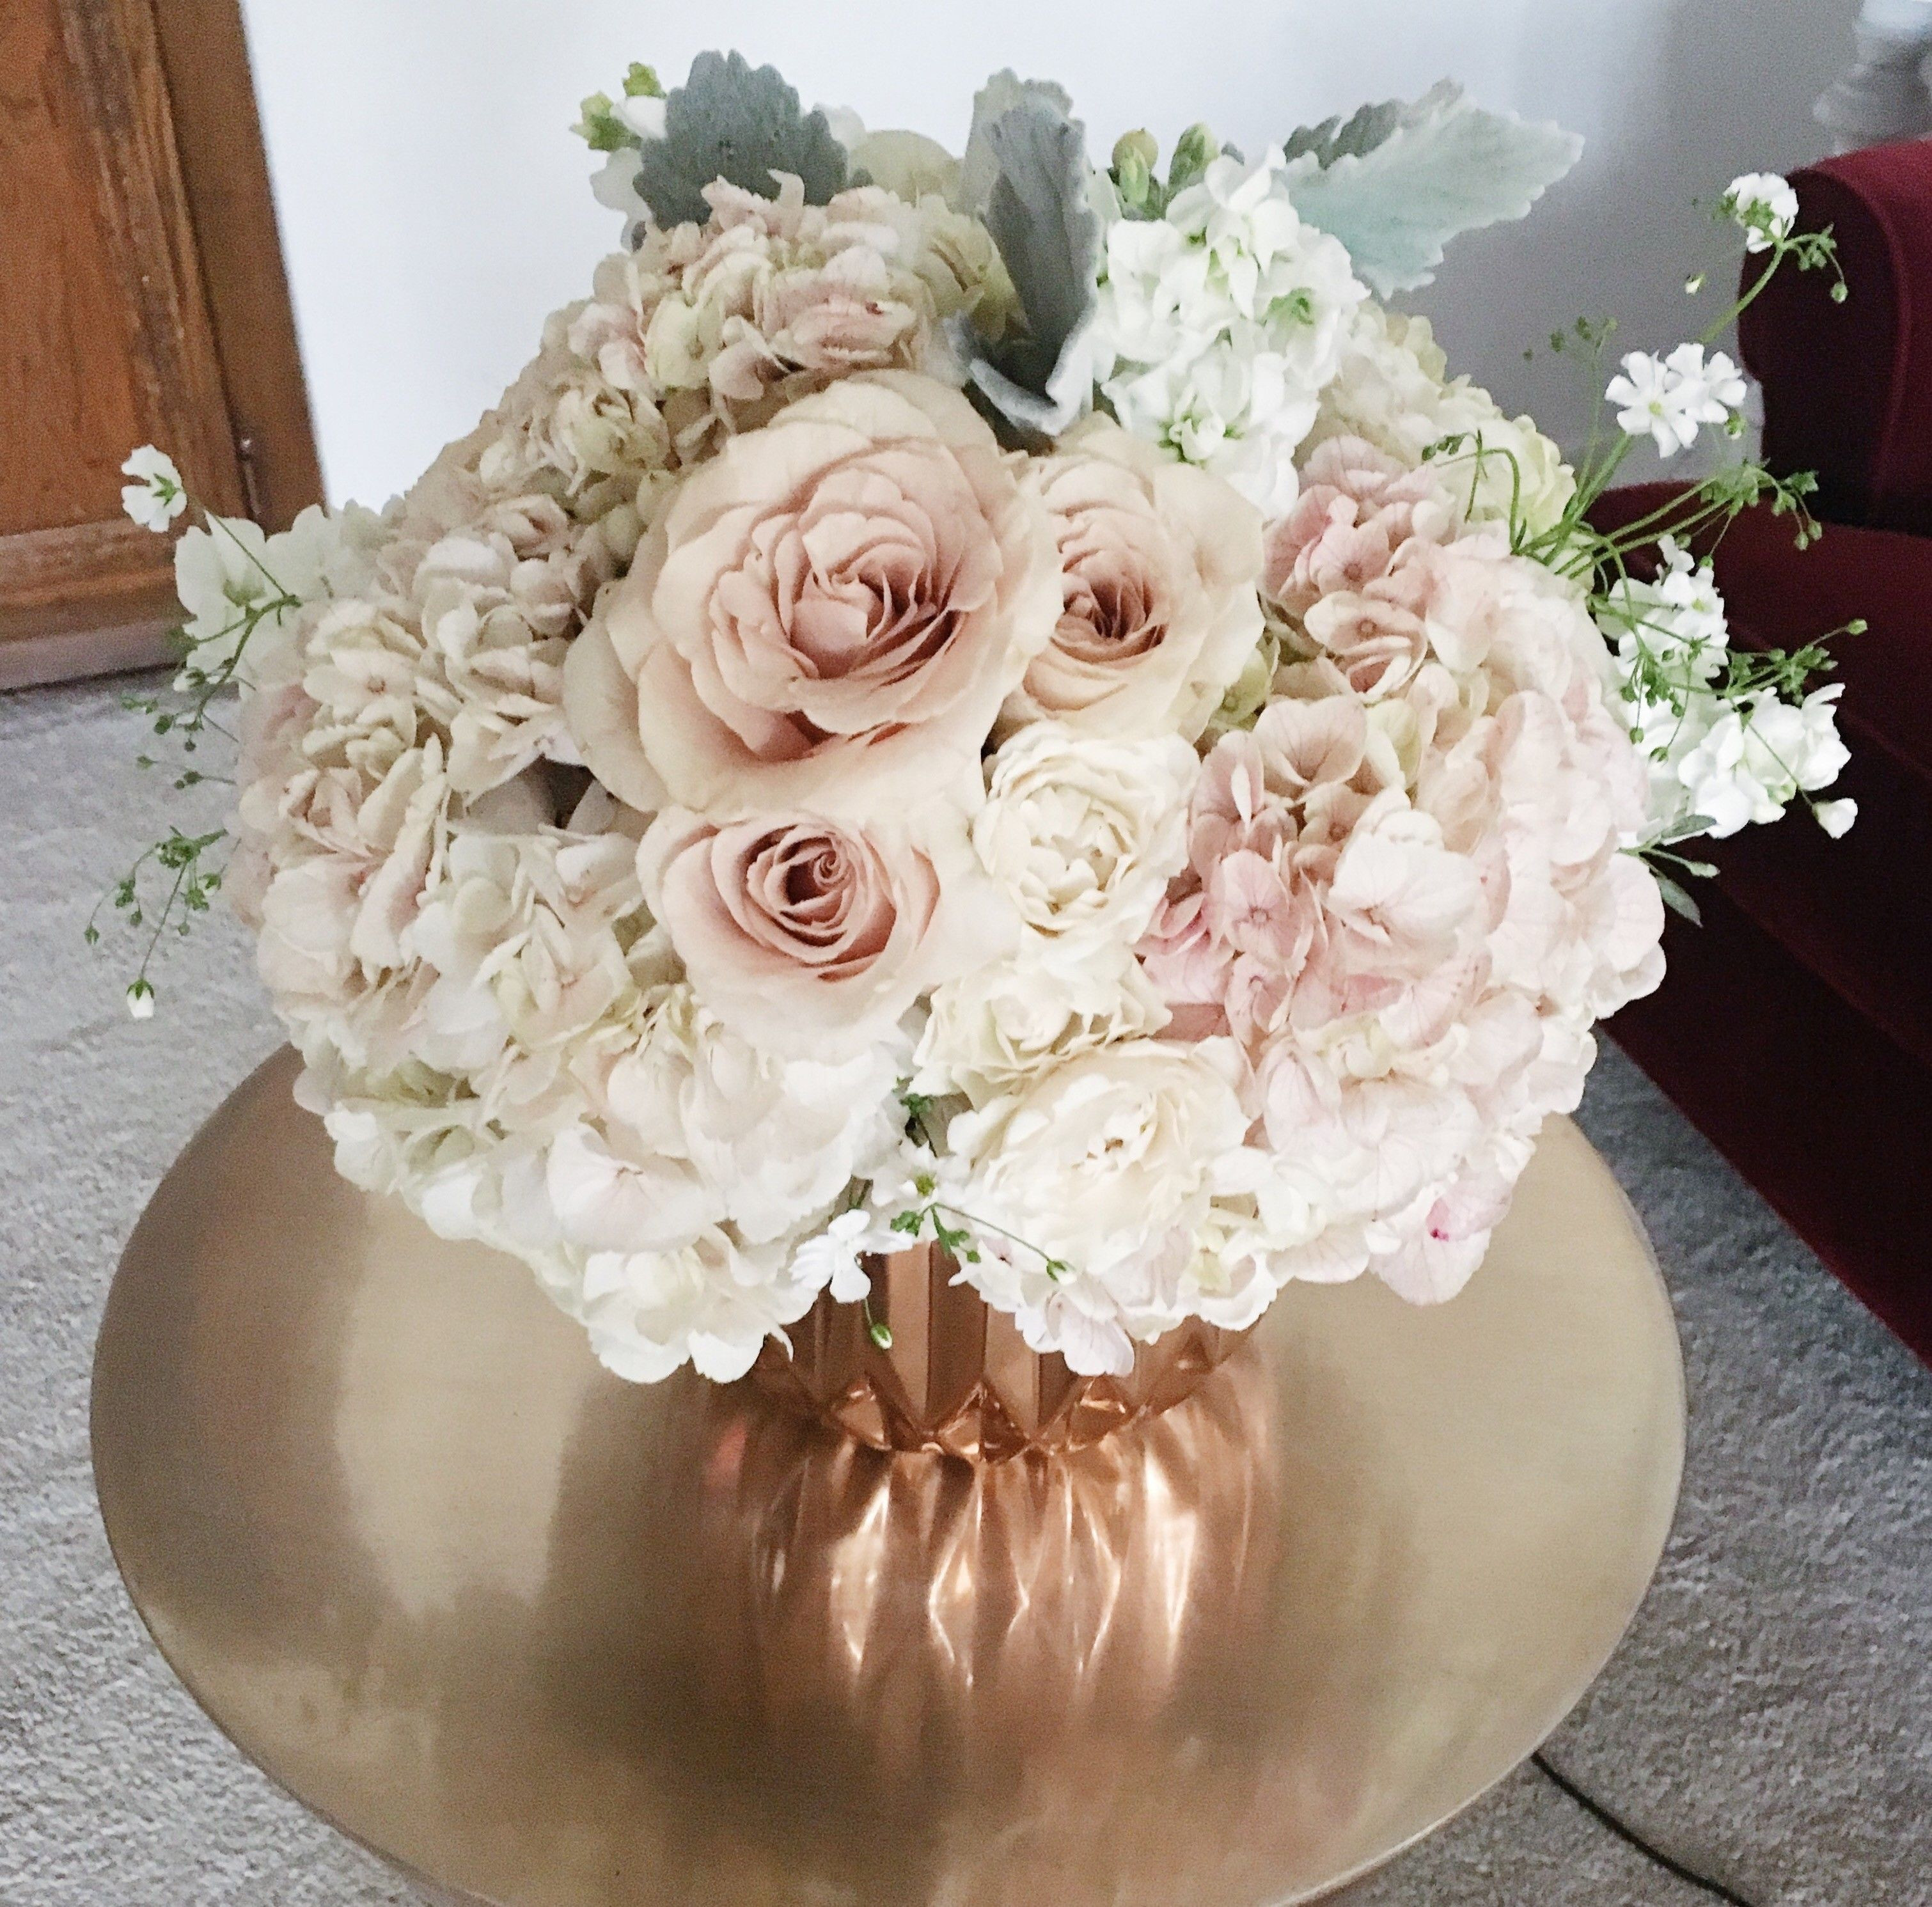 Send the Blushing bouquet of flowers from Rock Paper Details in LOS ANGELES CA Local fresh flower delivery directly from the florist and never in a box